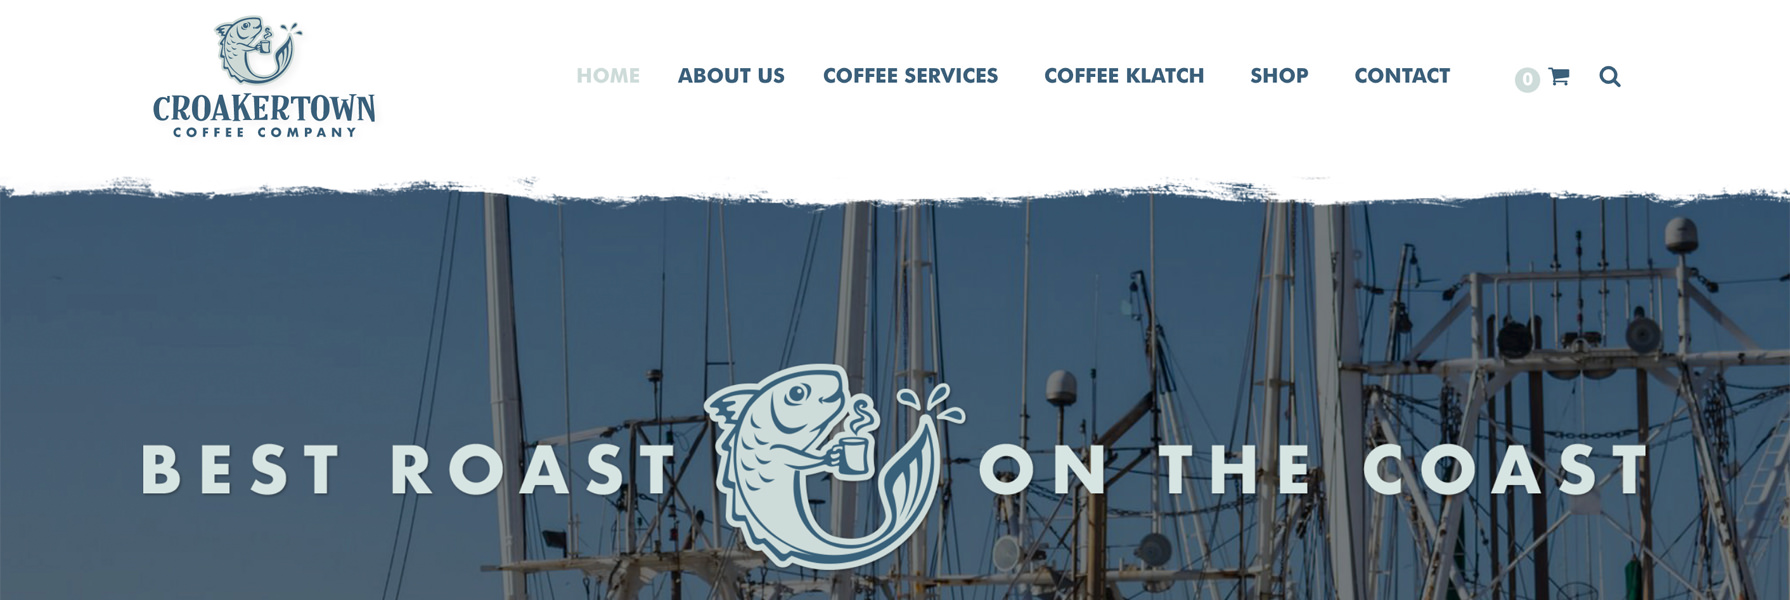 Croakertown Coffee Company Online Store, Responsive Layout and Web Programming